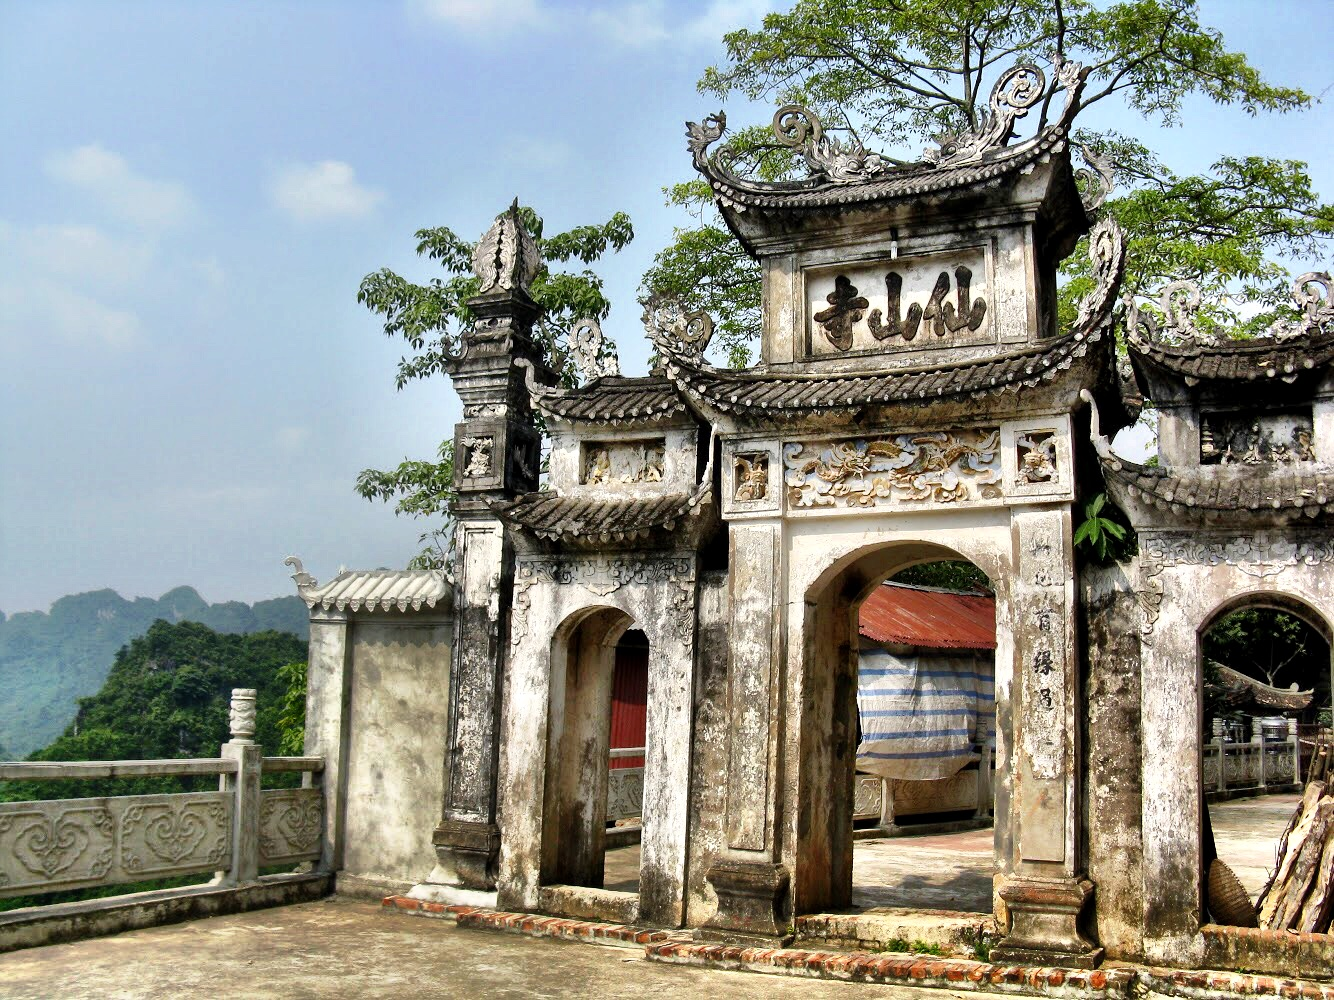 One of the gates into the temple area of the Perfume Pagoda